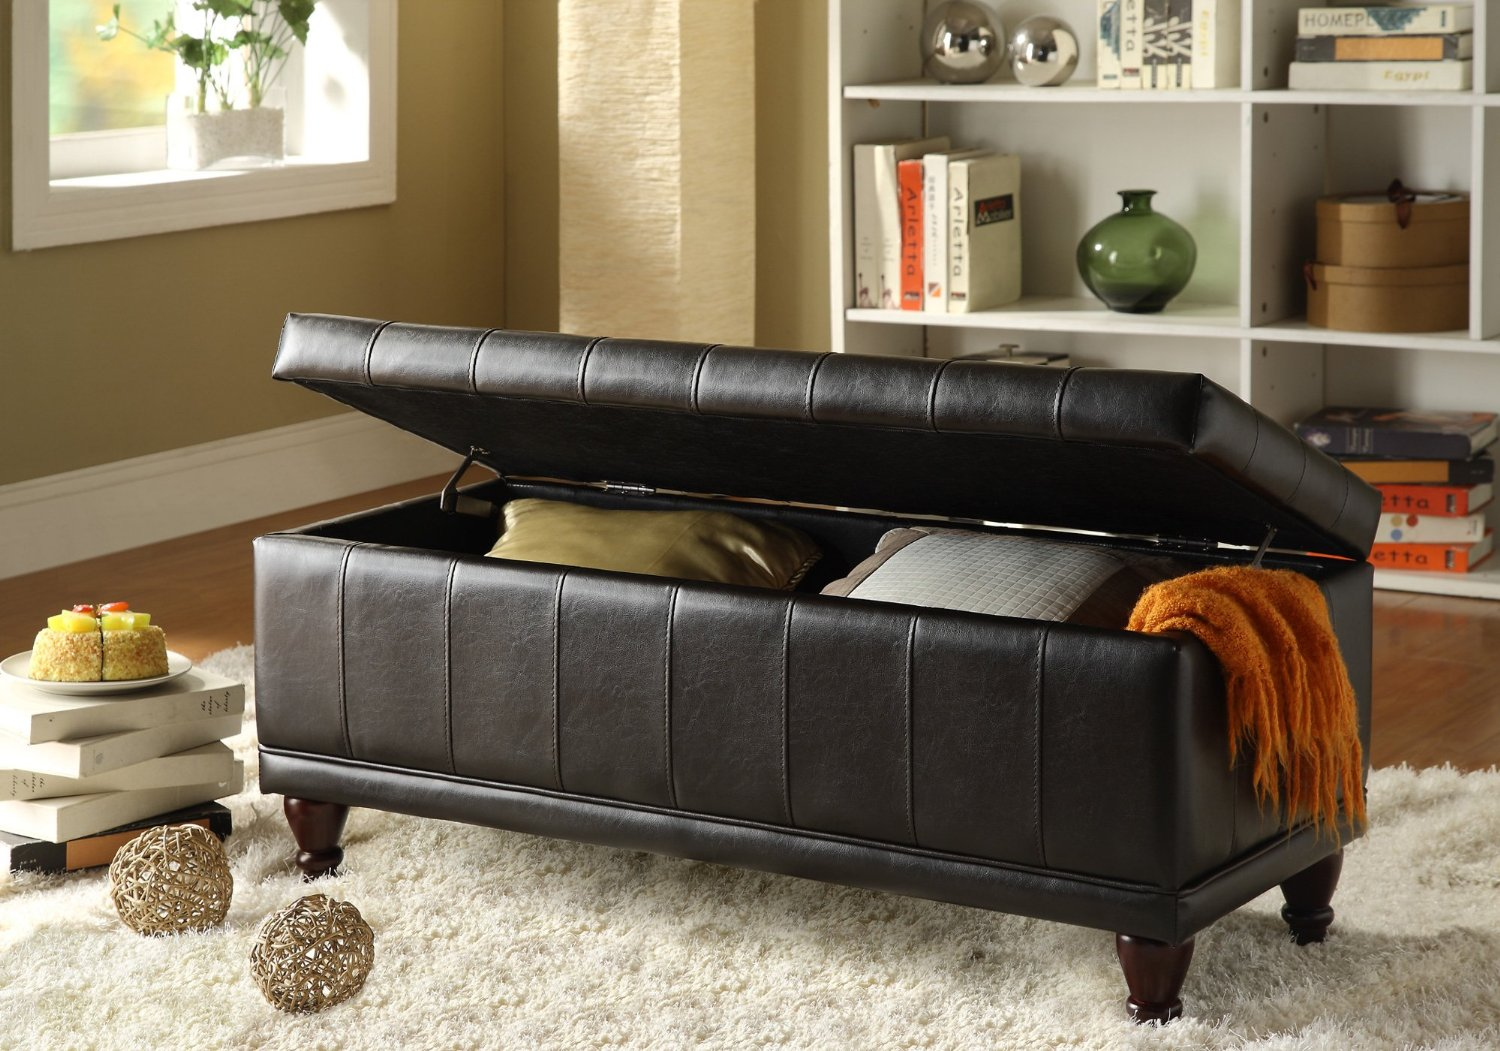 Total Fab: Bedroom Storage Bench Seat